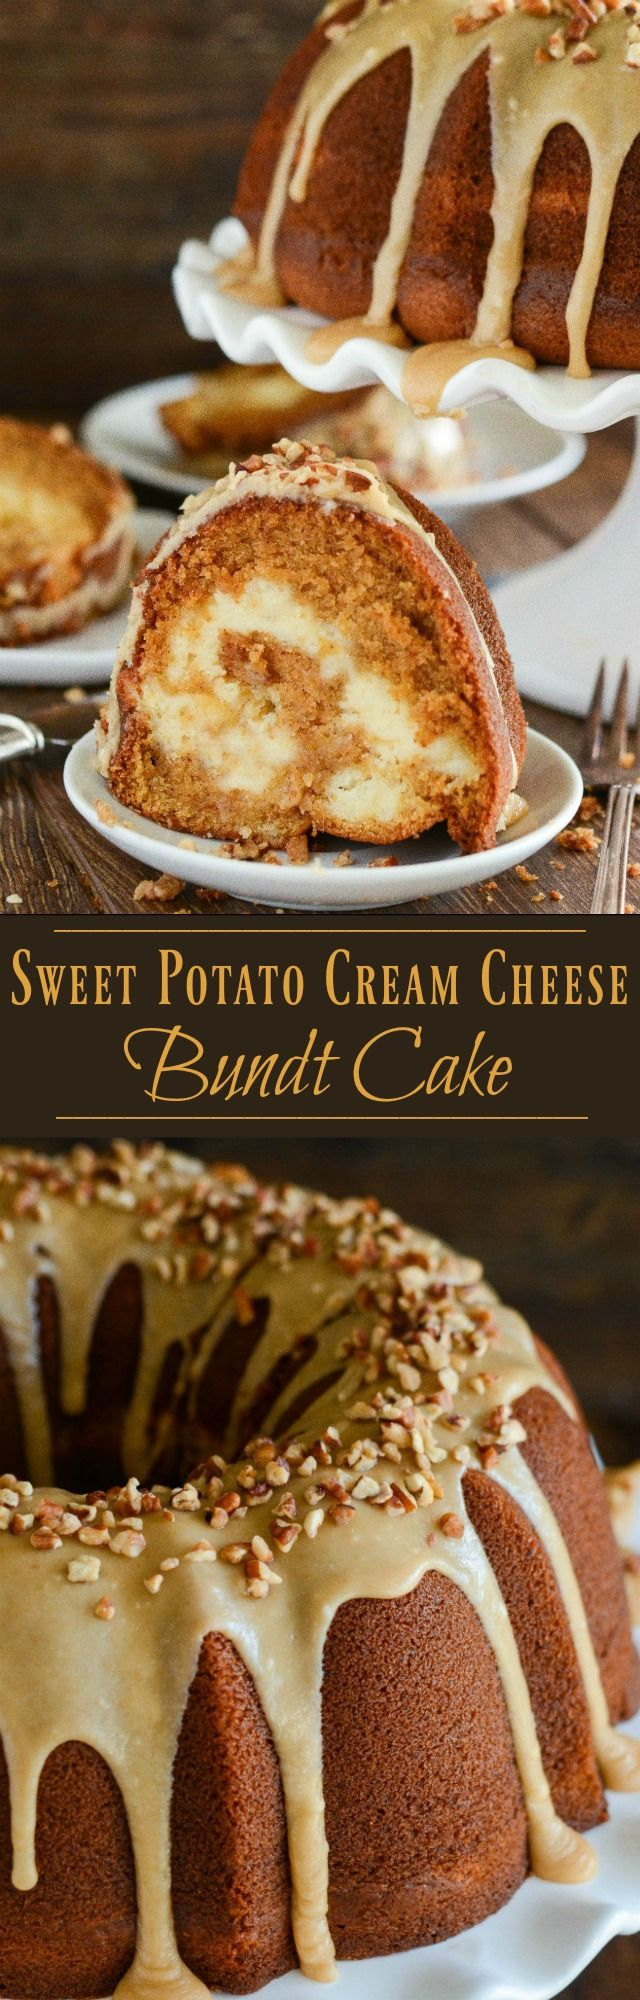 Sweet Potato Cream Cheese Bundt Cake